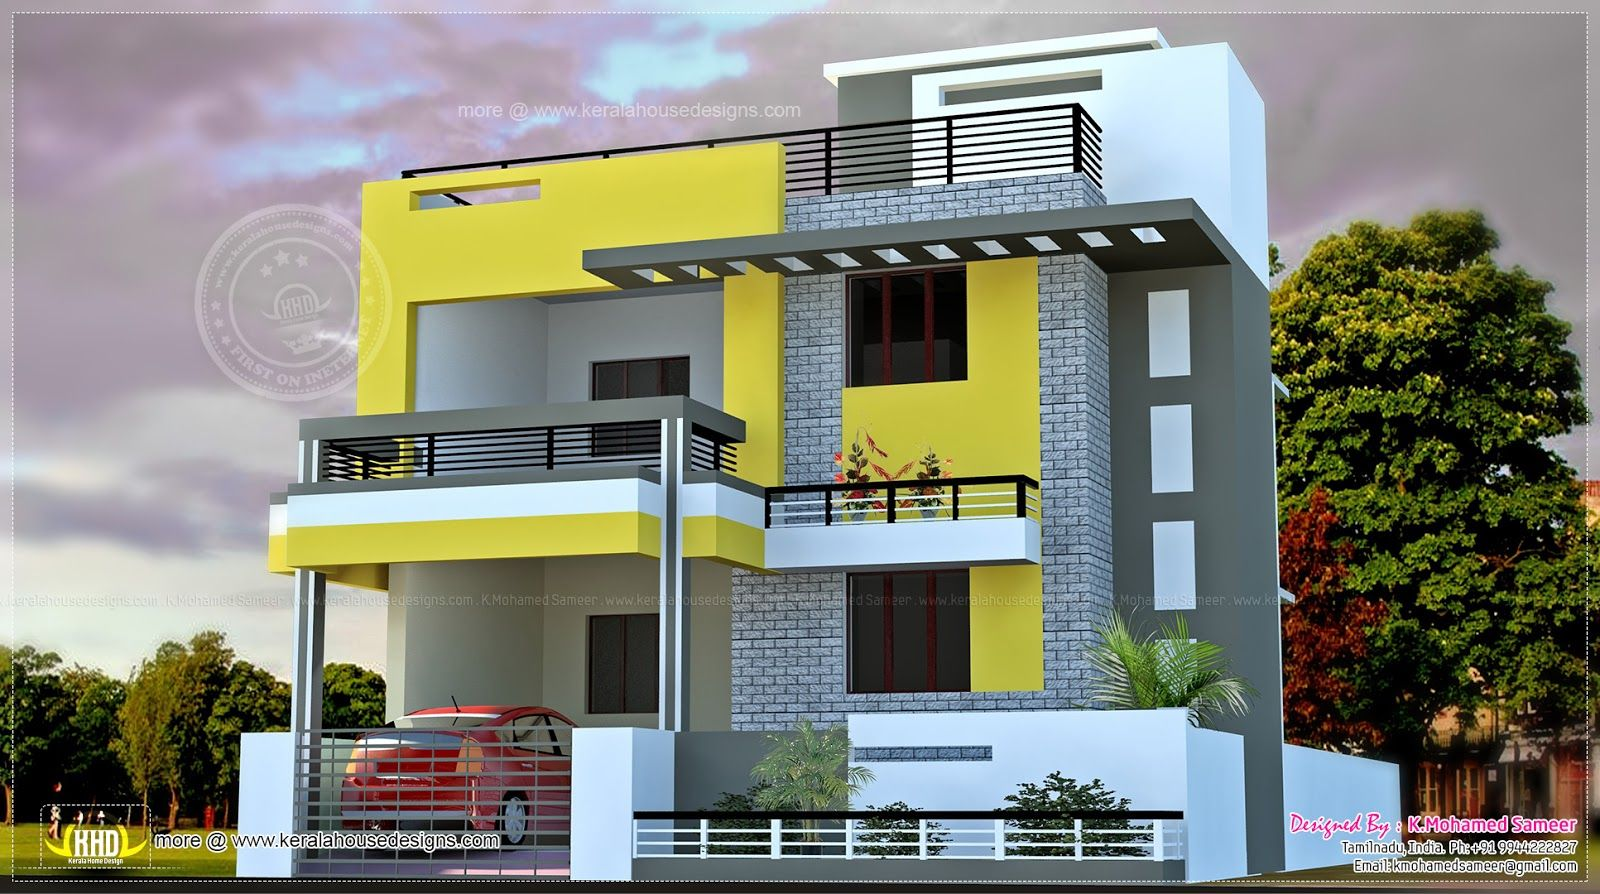 Elevations of residential buildings in indian photo Designer houses in india